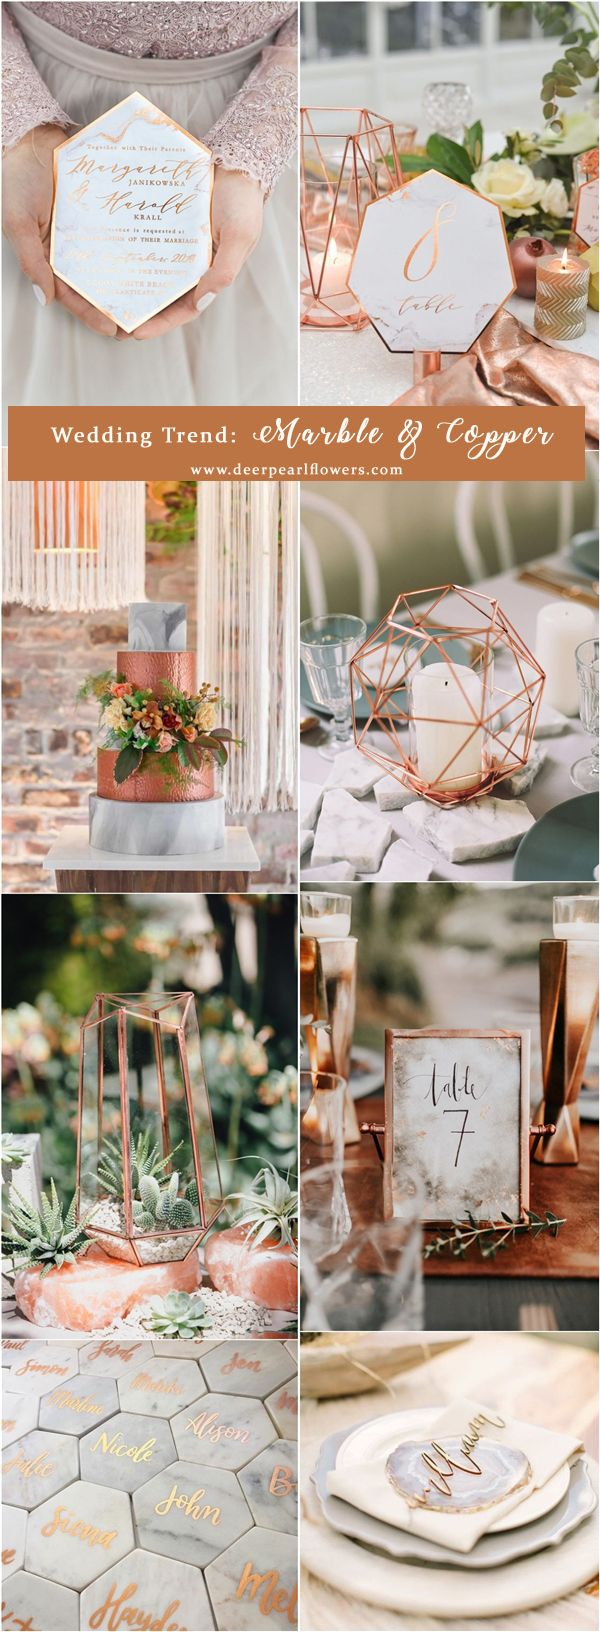 wedding trends marble and copper wedding ideas / http://www.deerpearlflowers.com/top-6-wedding-trends-for-2018/